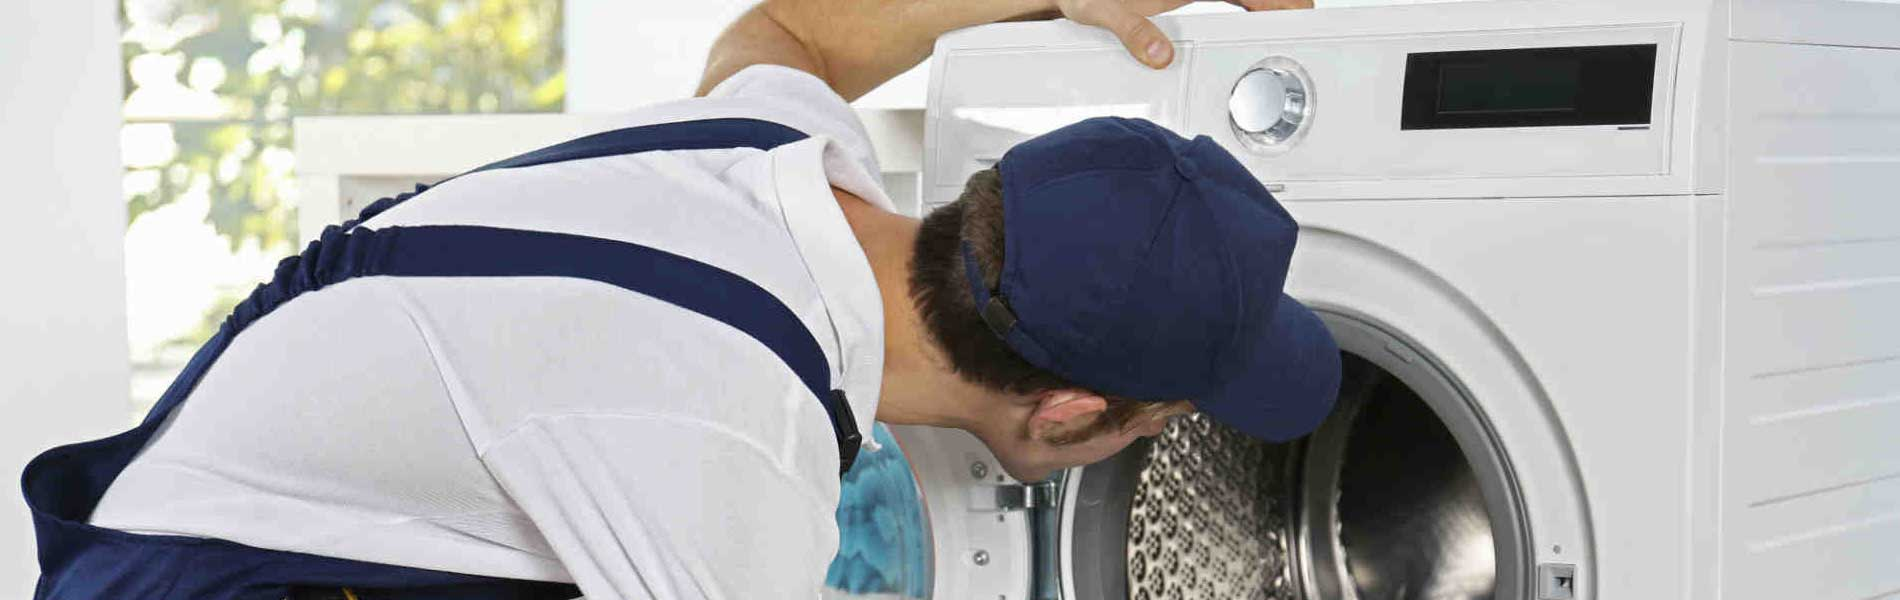 Onida Washing Machine Mechanic in Poonamallee